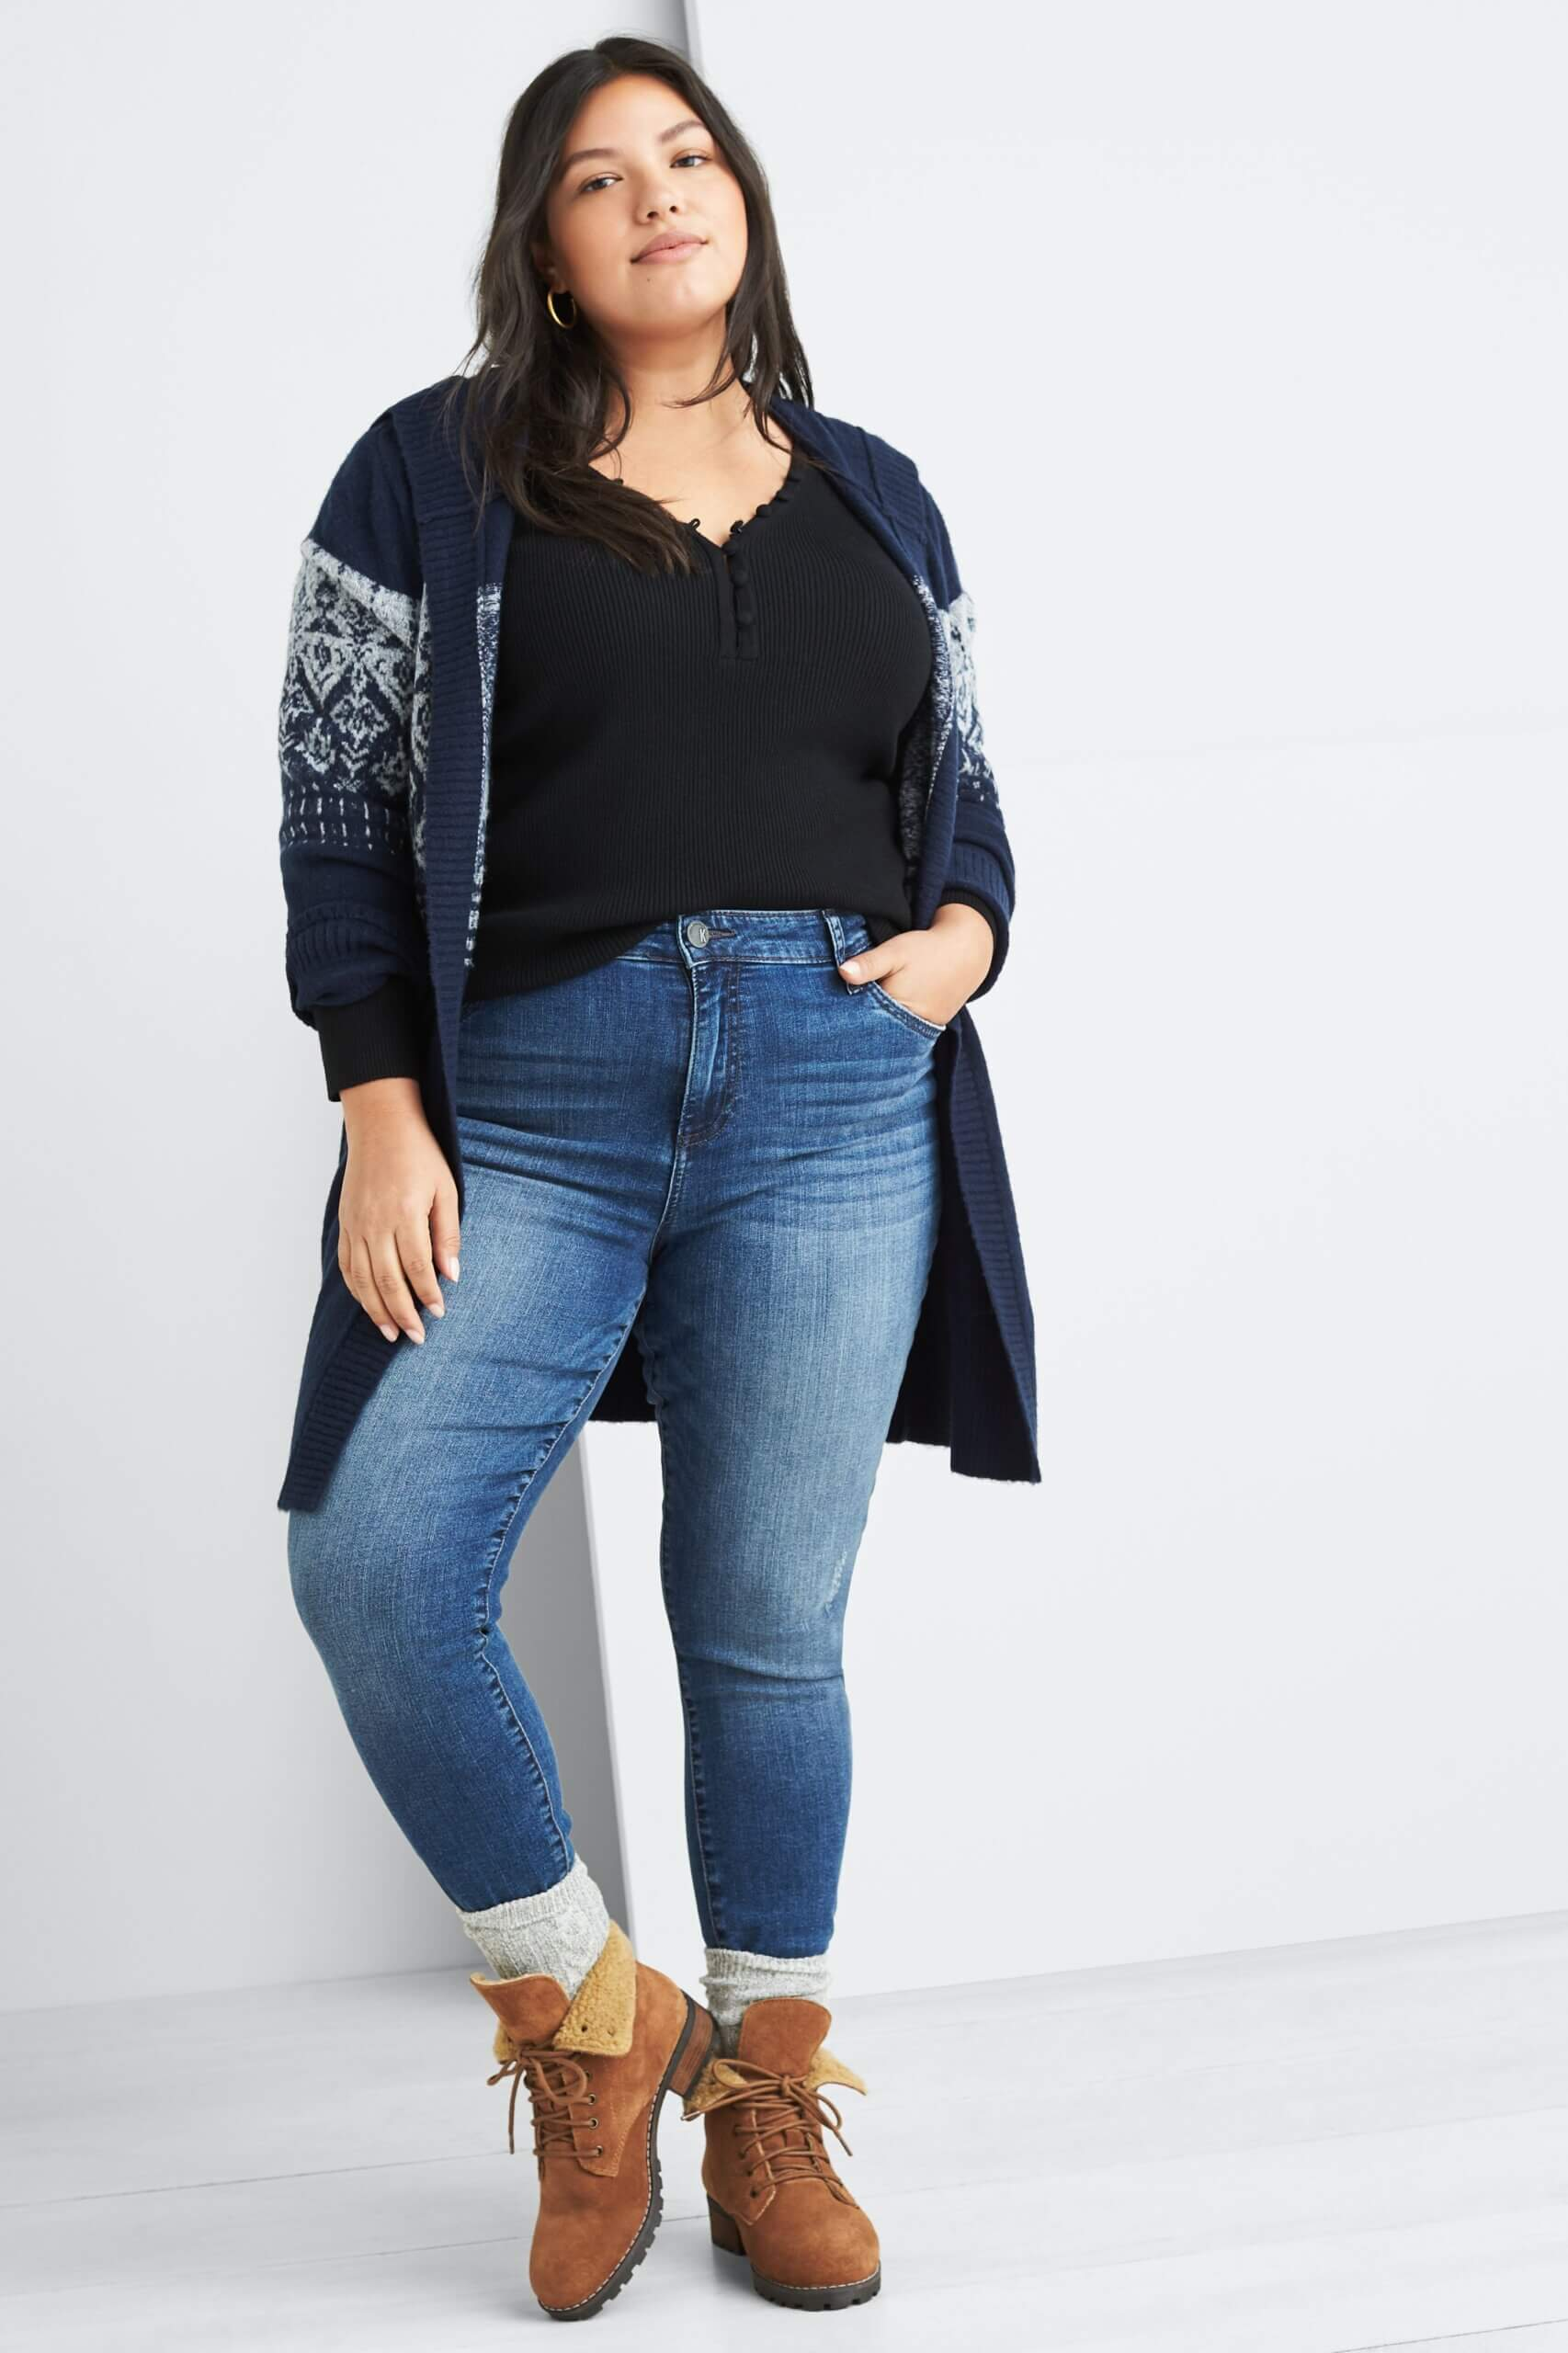 Stitch Fix Women's model wearing navy pullover, navy fair isle hooded cardigan, grey socks over her blue jeans and brown combat booties.